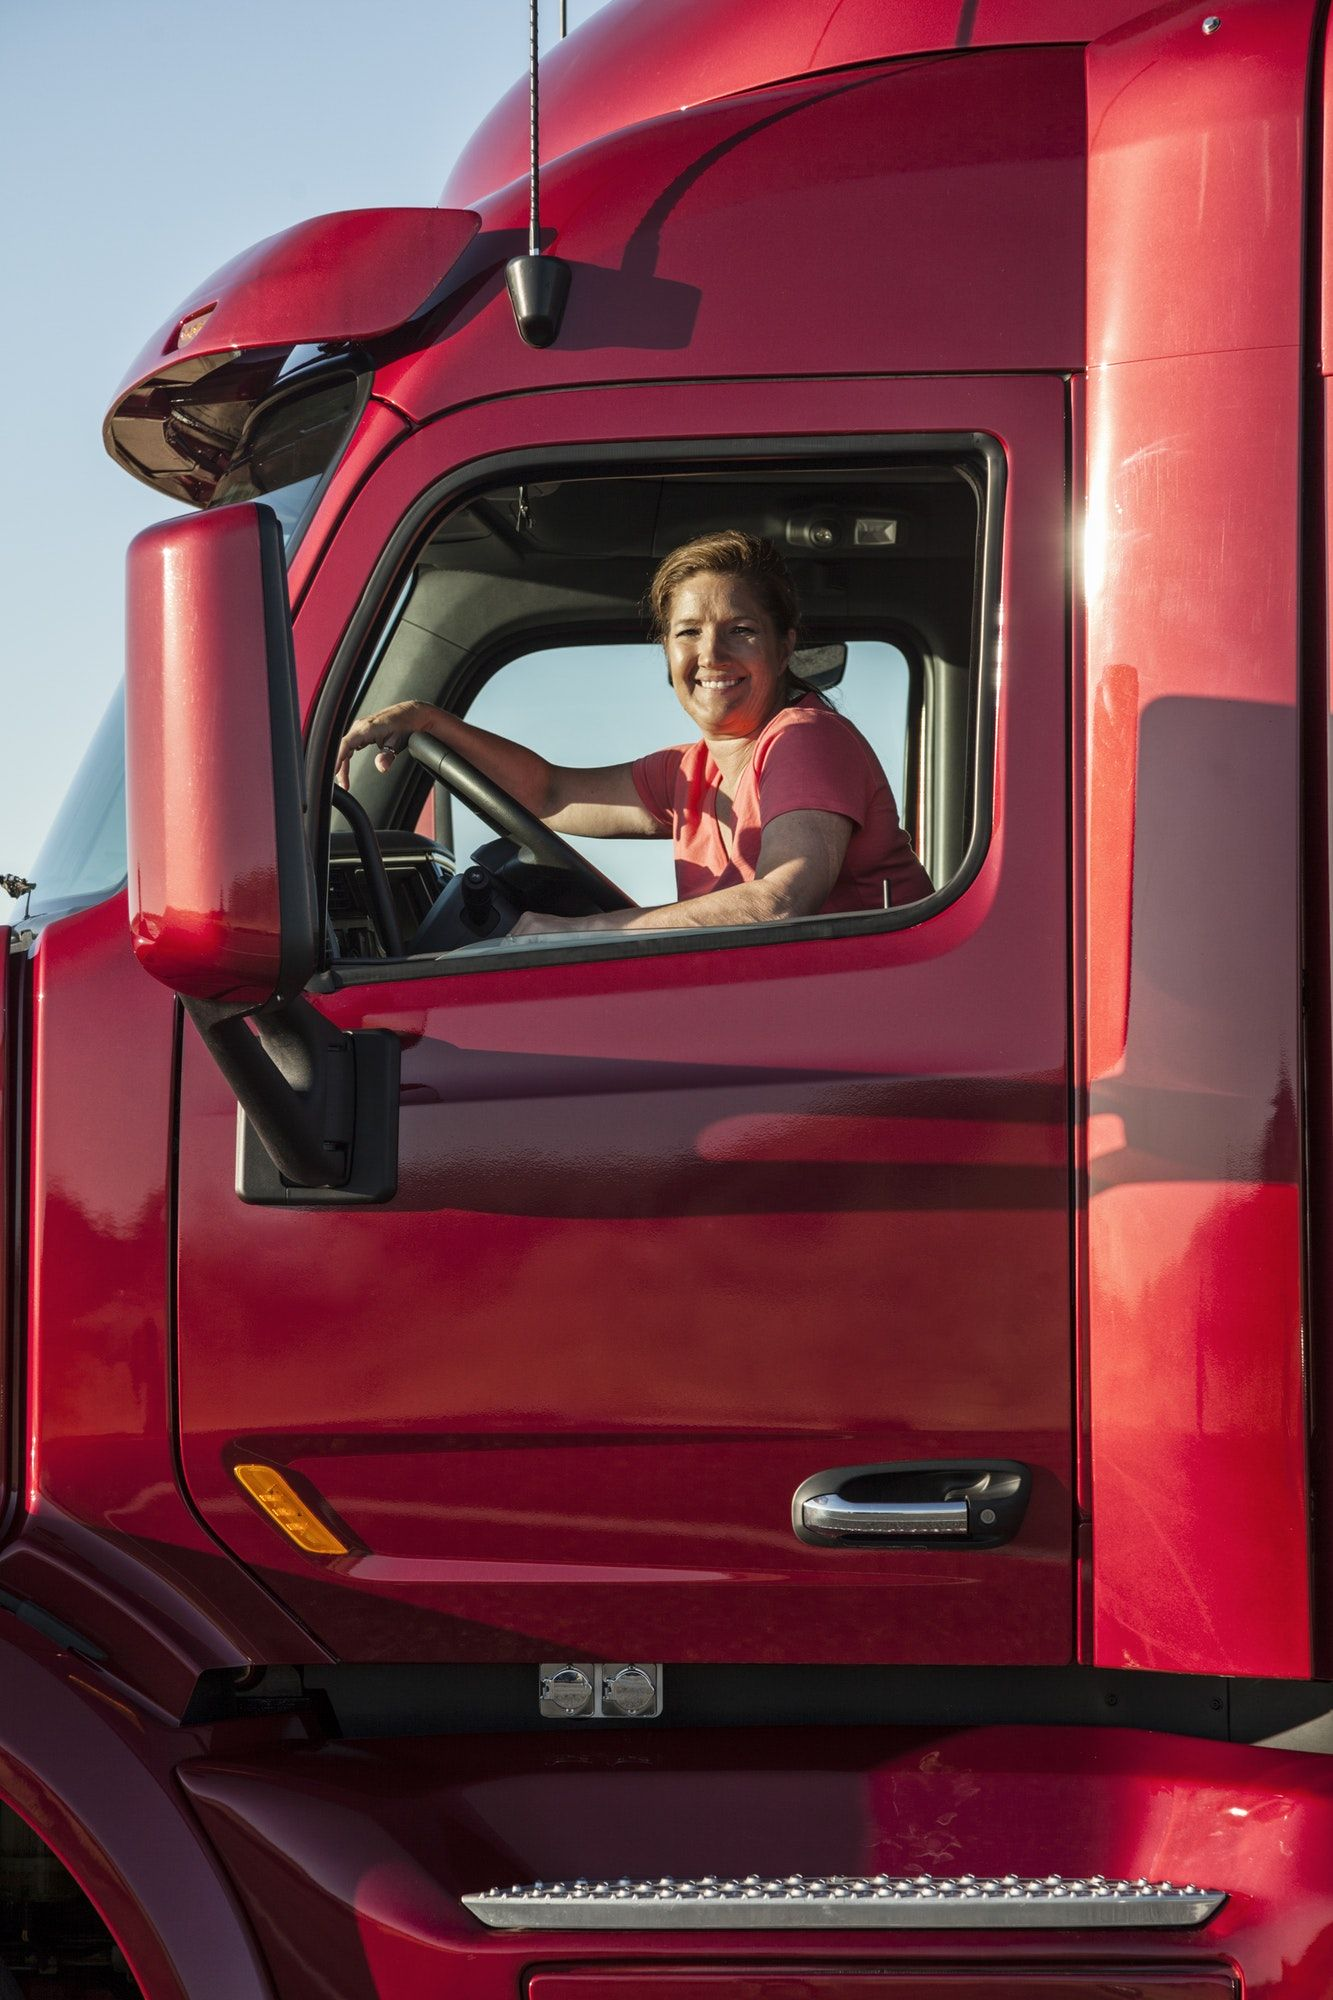 Portrait of a Caucasian woman driver and her commercial truck.